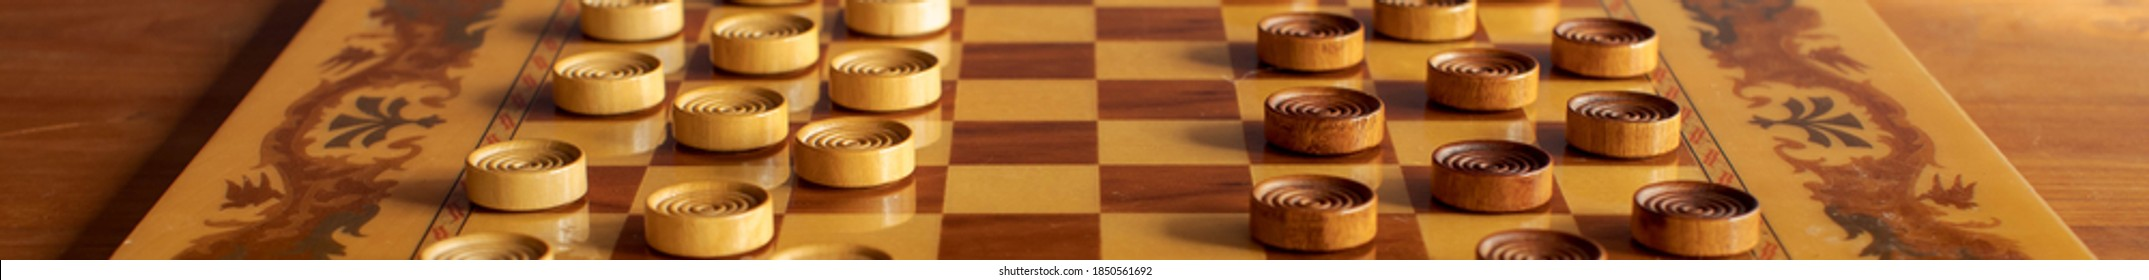 Horizontal Banner of a Vintage wooden checkerboard with brown and cream colored checkers.